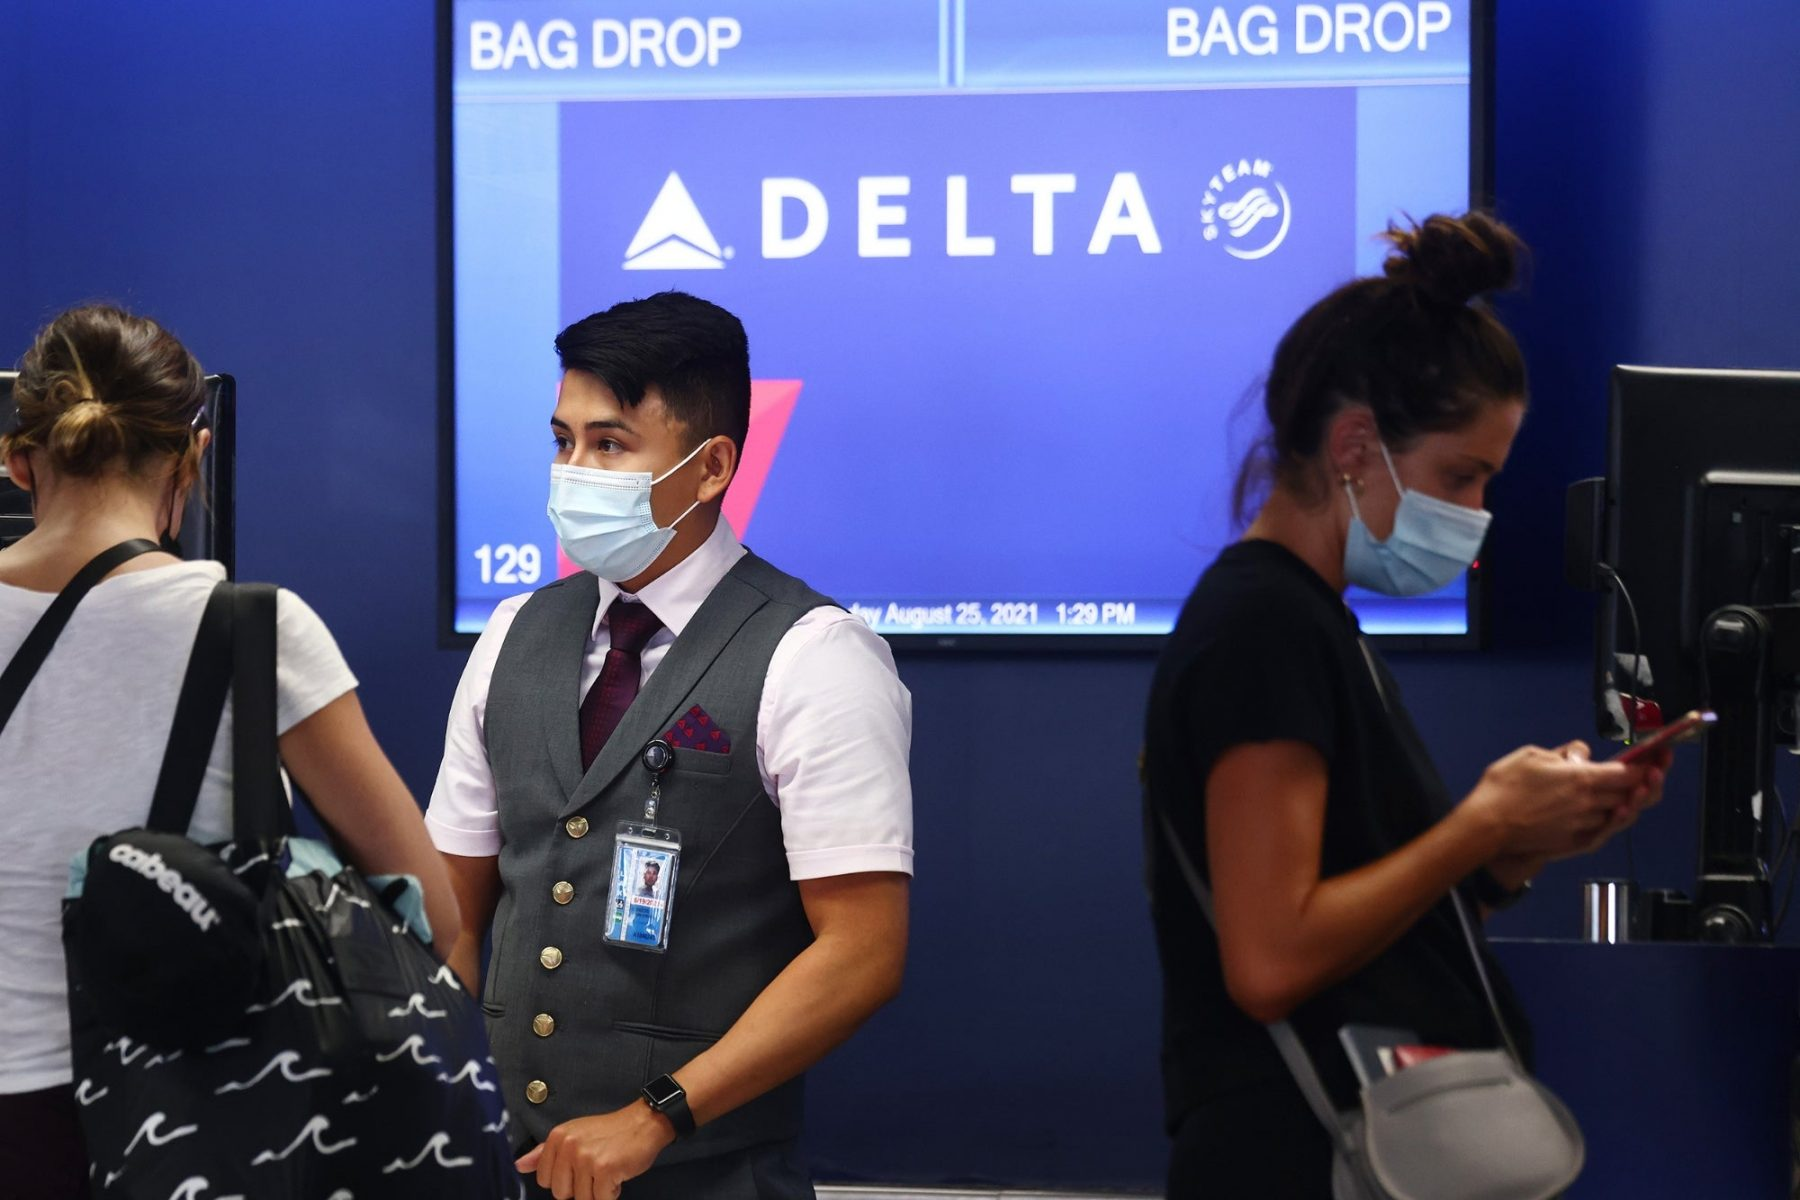 unvaccinated-delta-employees-to-pay-$200-monthly-fee